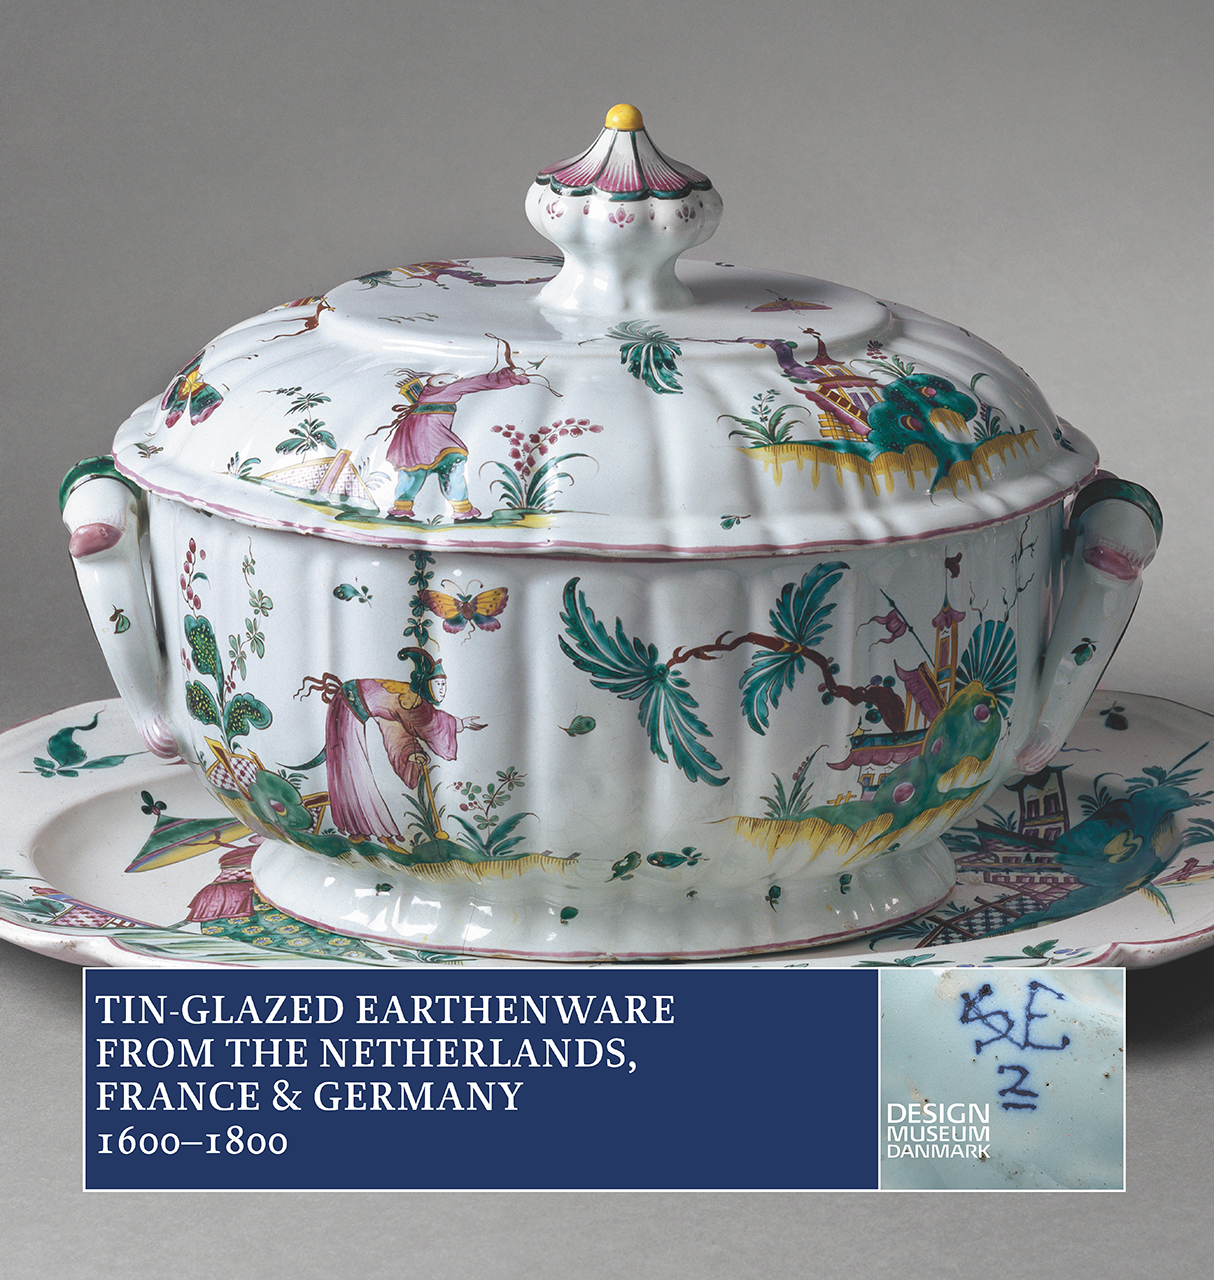 Tin-Glazed Earthenware from the Netherlands, France and Germany, 1600–1800